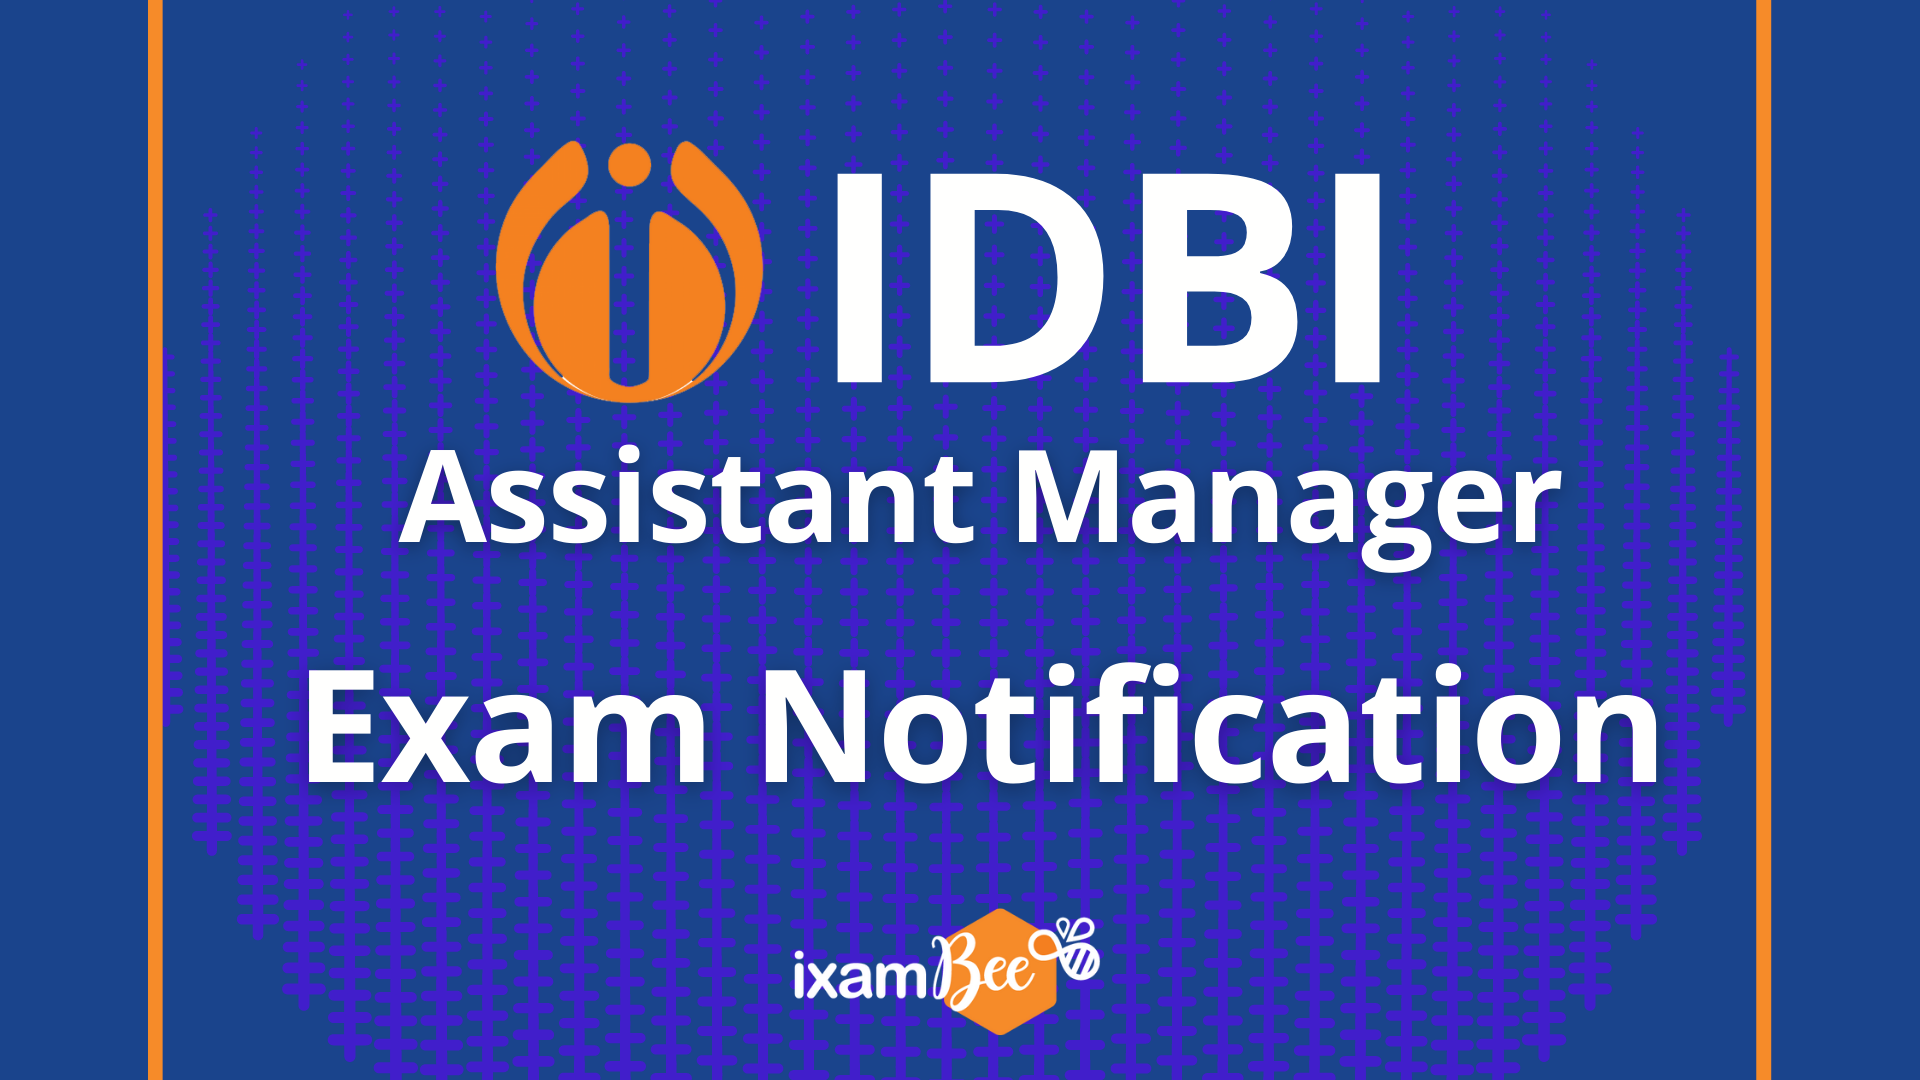 IDBI Assistant Manager Exam Notification